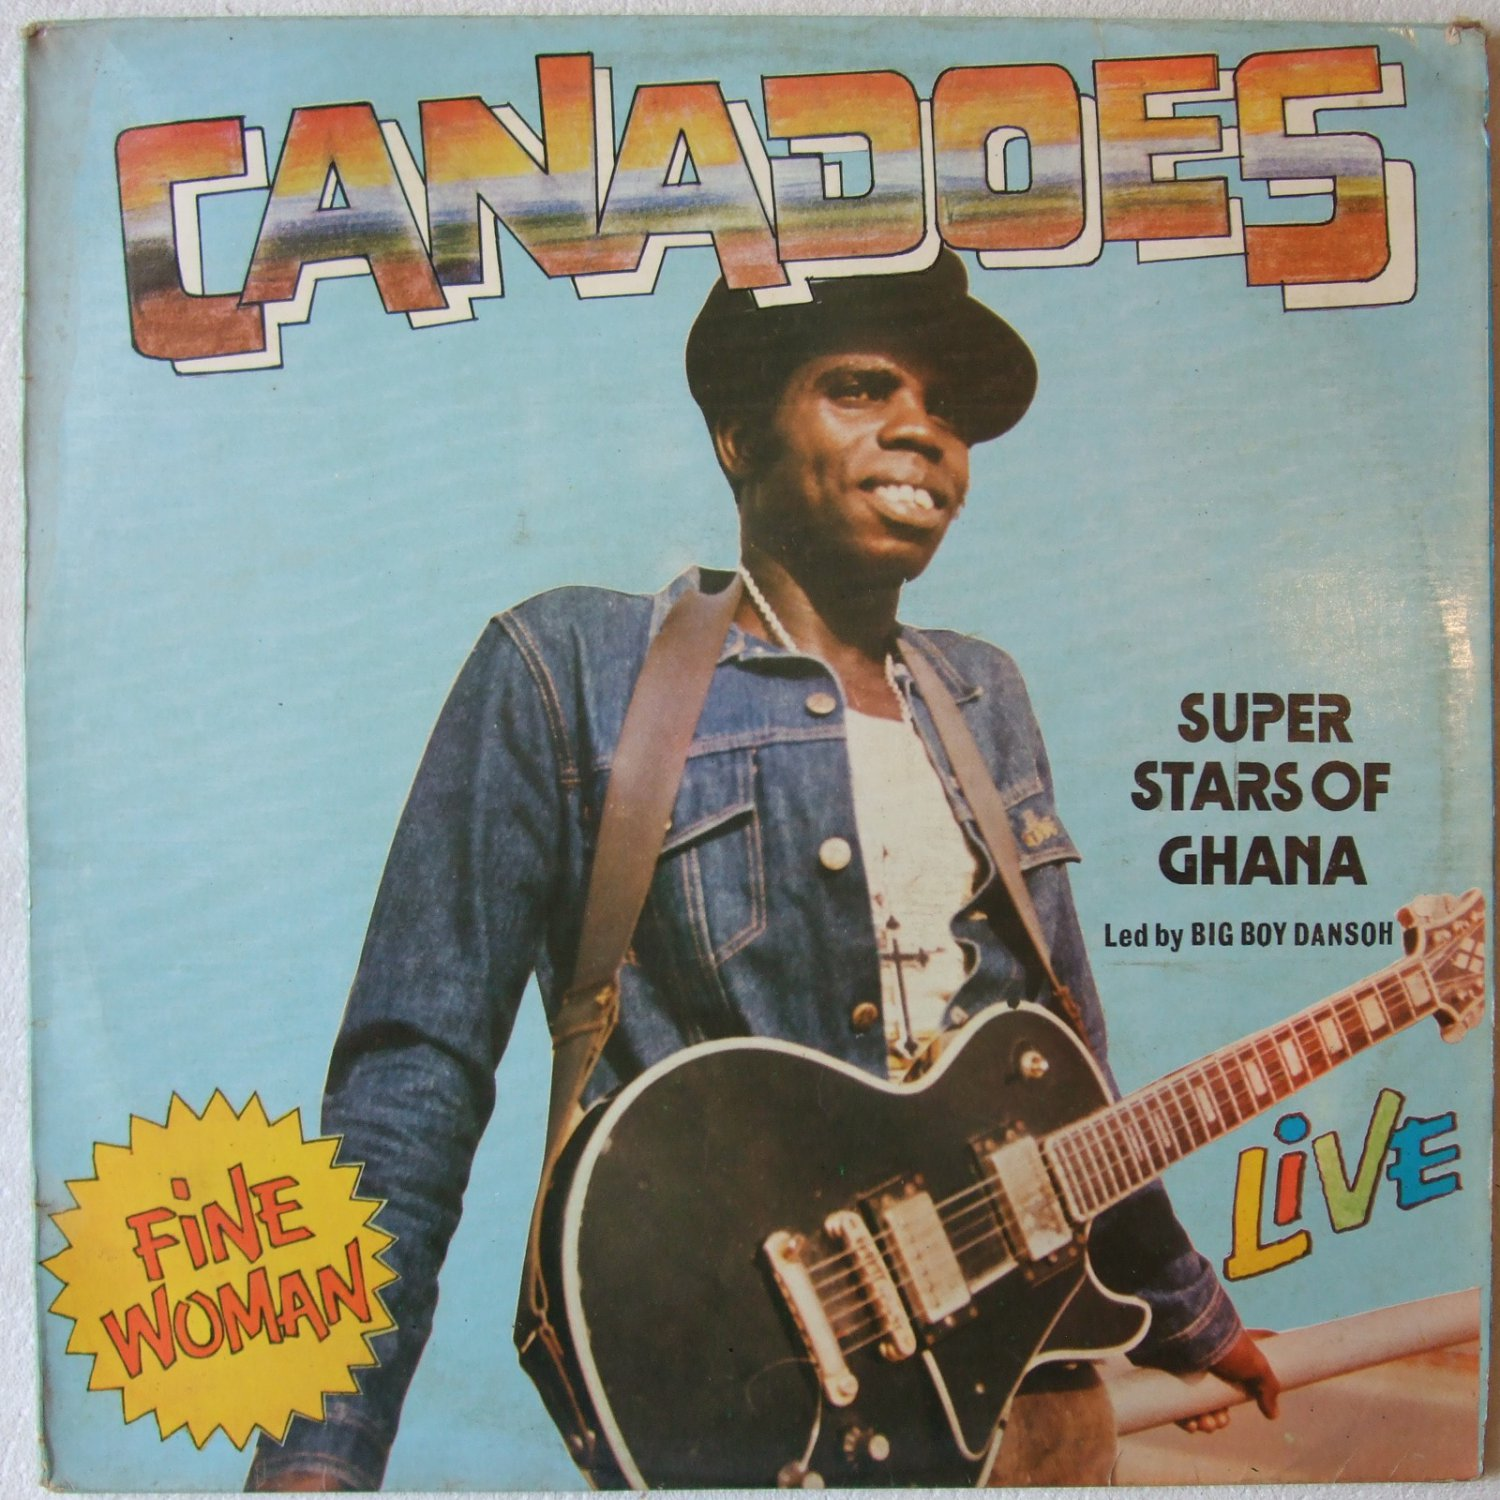 CANADOES STARS GHANA fine woman FUNKY HIGHLIFE LP ⬠mp3 listen